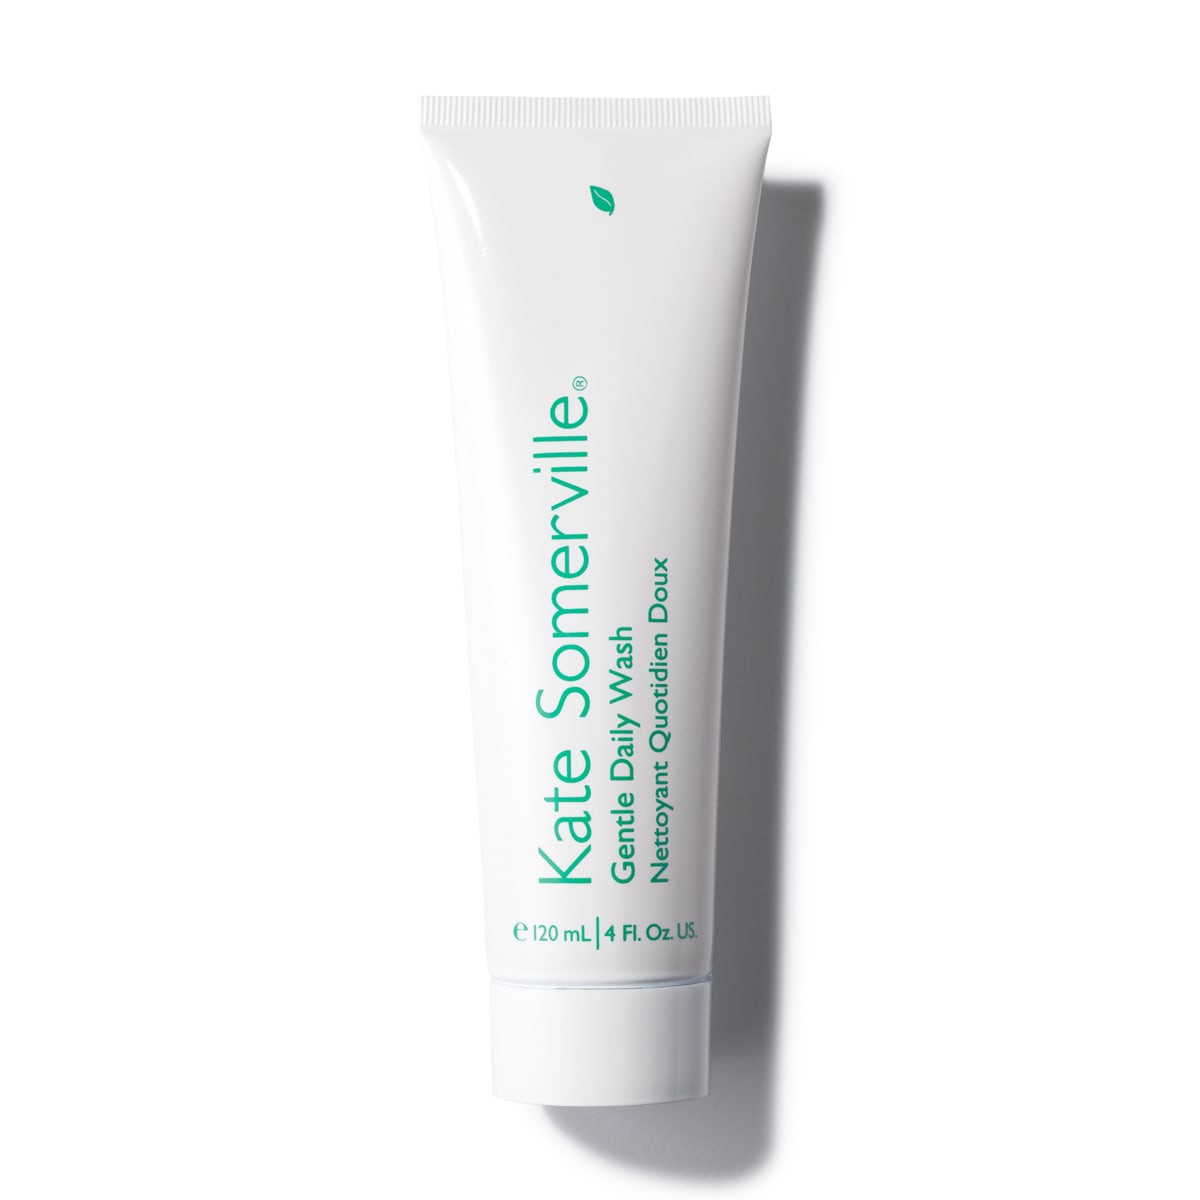 Kate Somerville Gentle Daily Cleanser